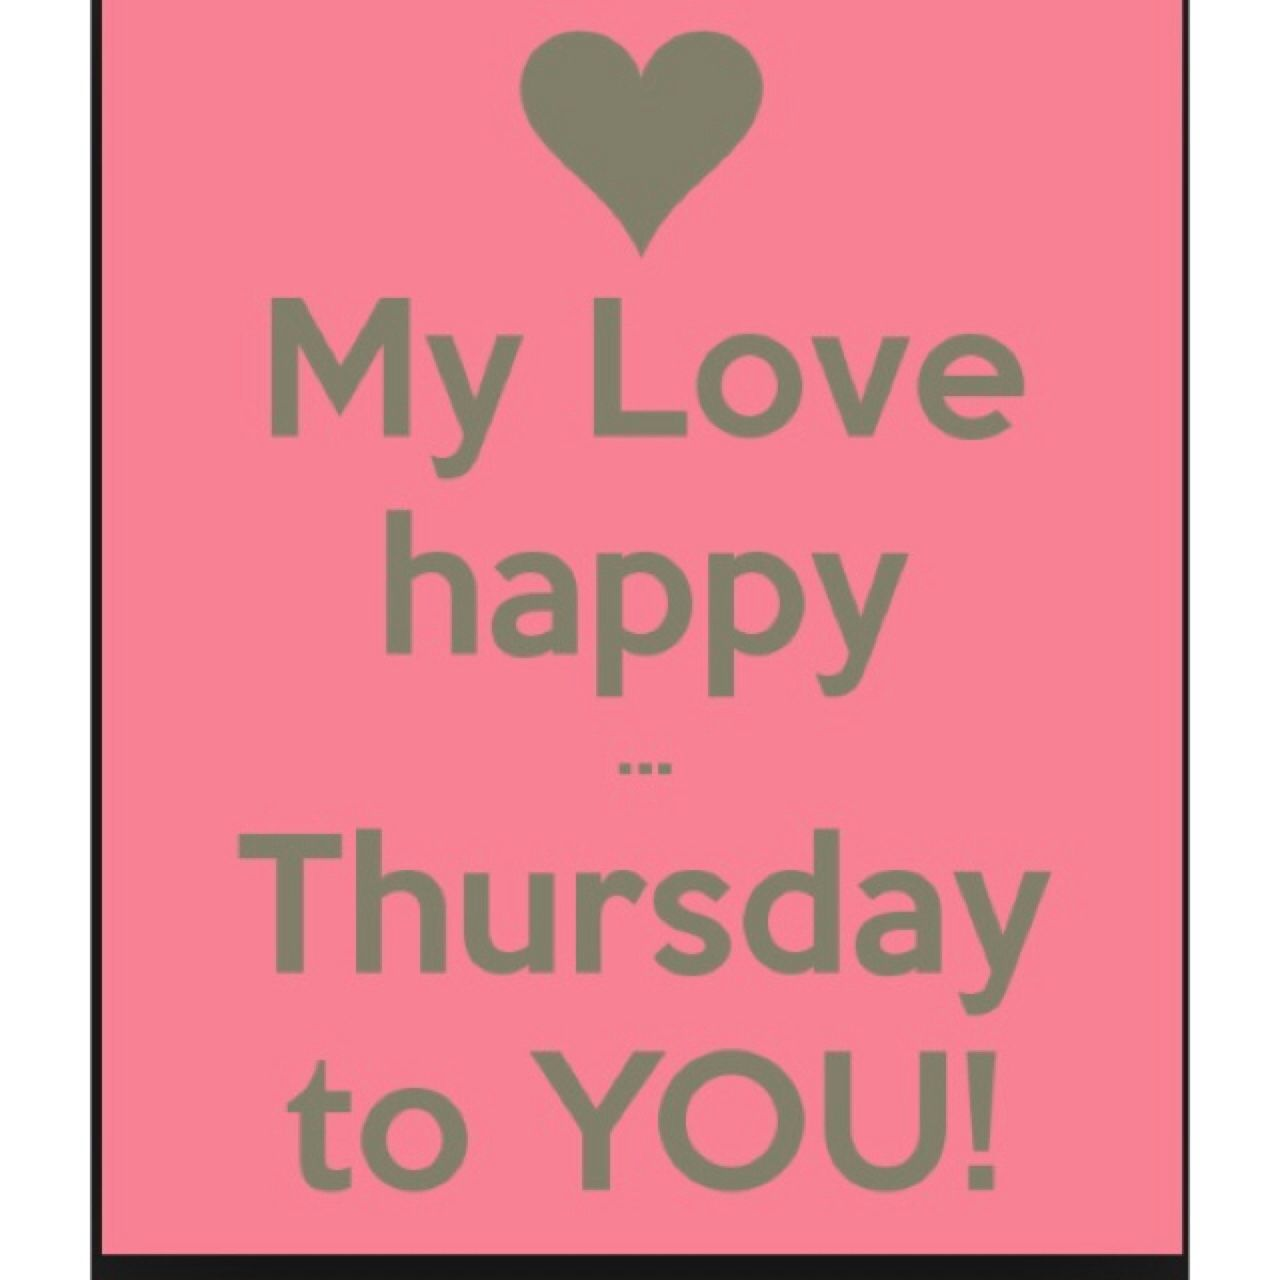 #My love happy Thursday to you.